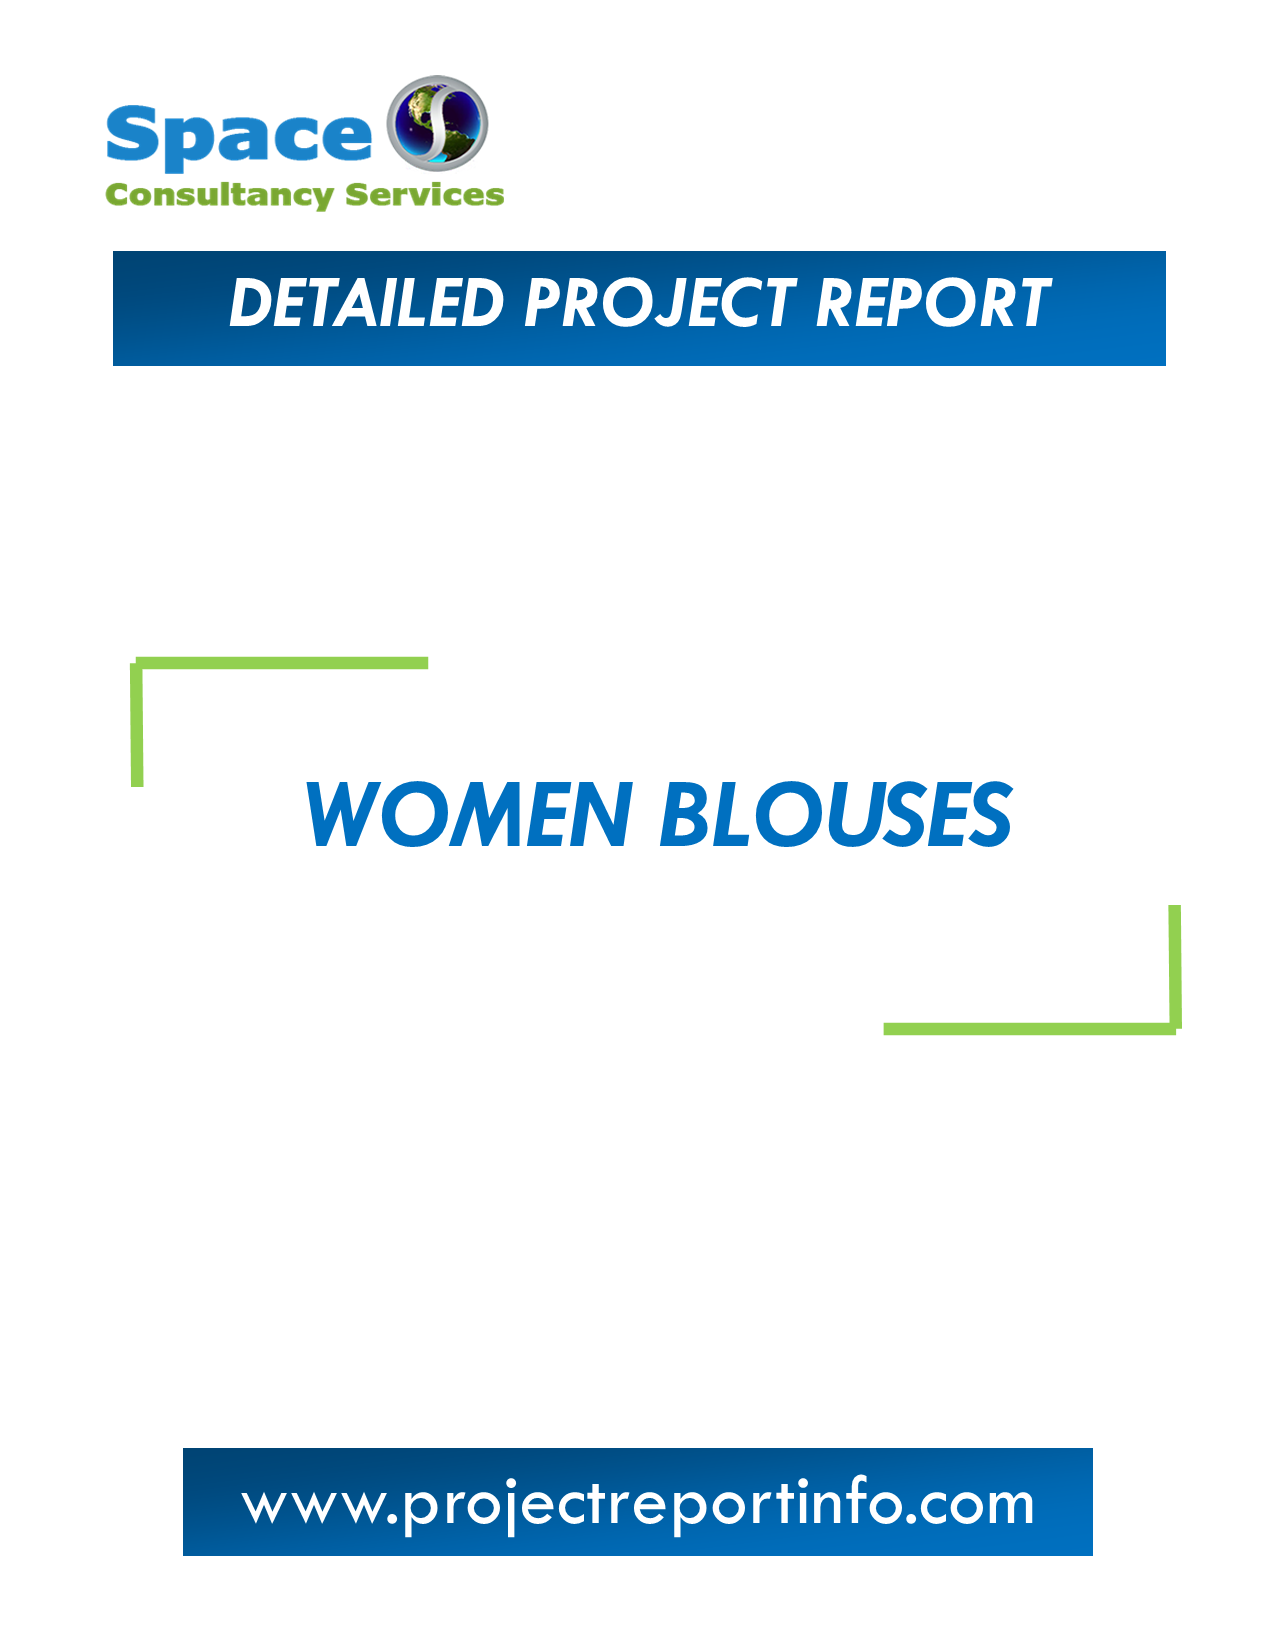 Project Report on Women Blouses Manufacturing